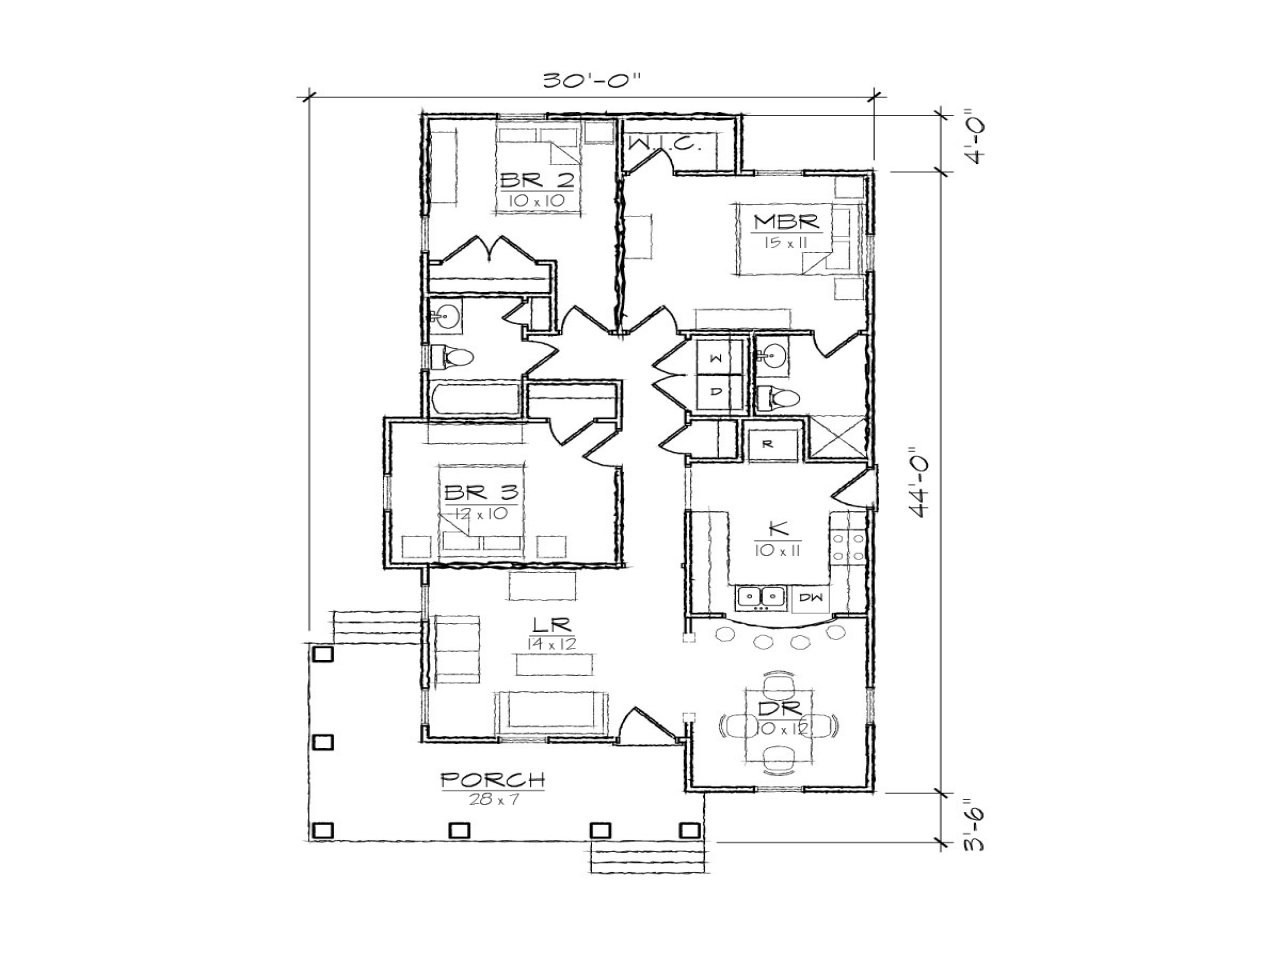 7b179b5bc76ed929 Ifloor Locations Juniper I Bungalow Floor Plan Tightlines Designs furthermore 1930 S Style House Plans Uk Arts besides 1930s Sears House Plans together with R856 also 800 Sq Ft House. on sears bungalow style house plans